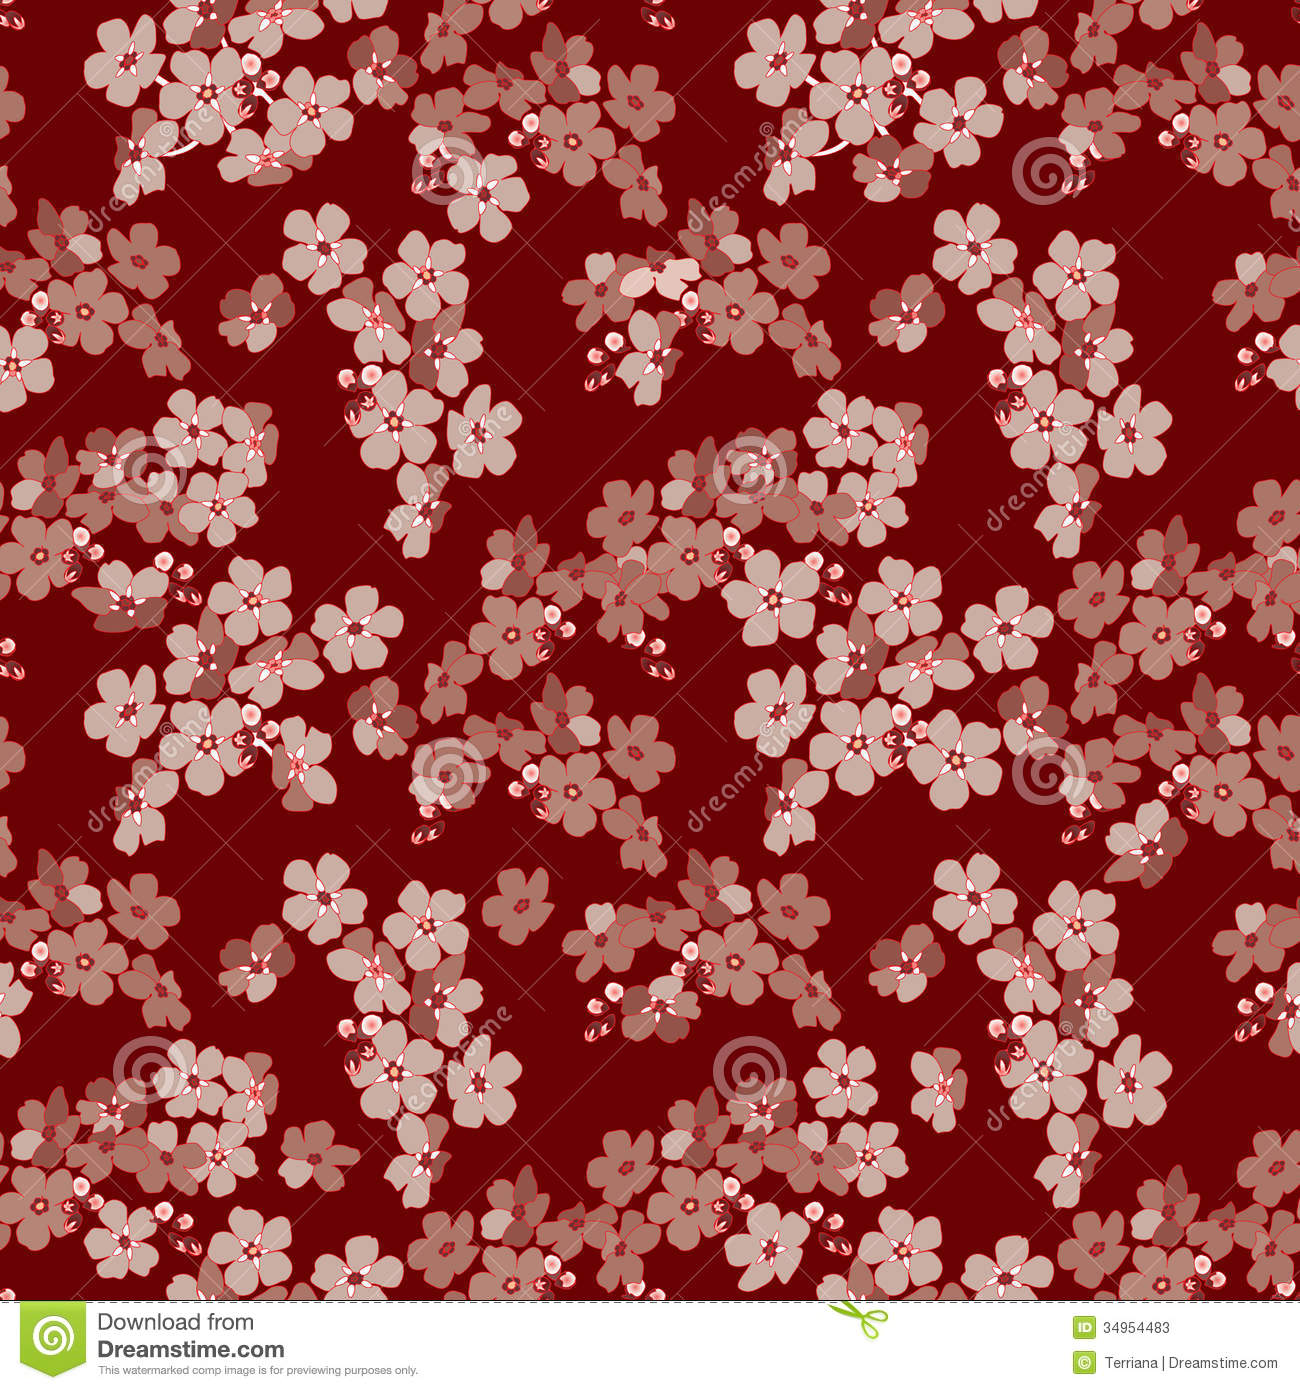 texture background patterns flowers - photo #23